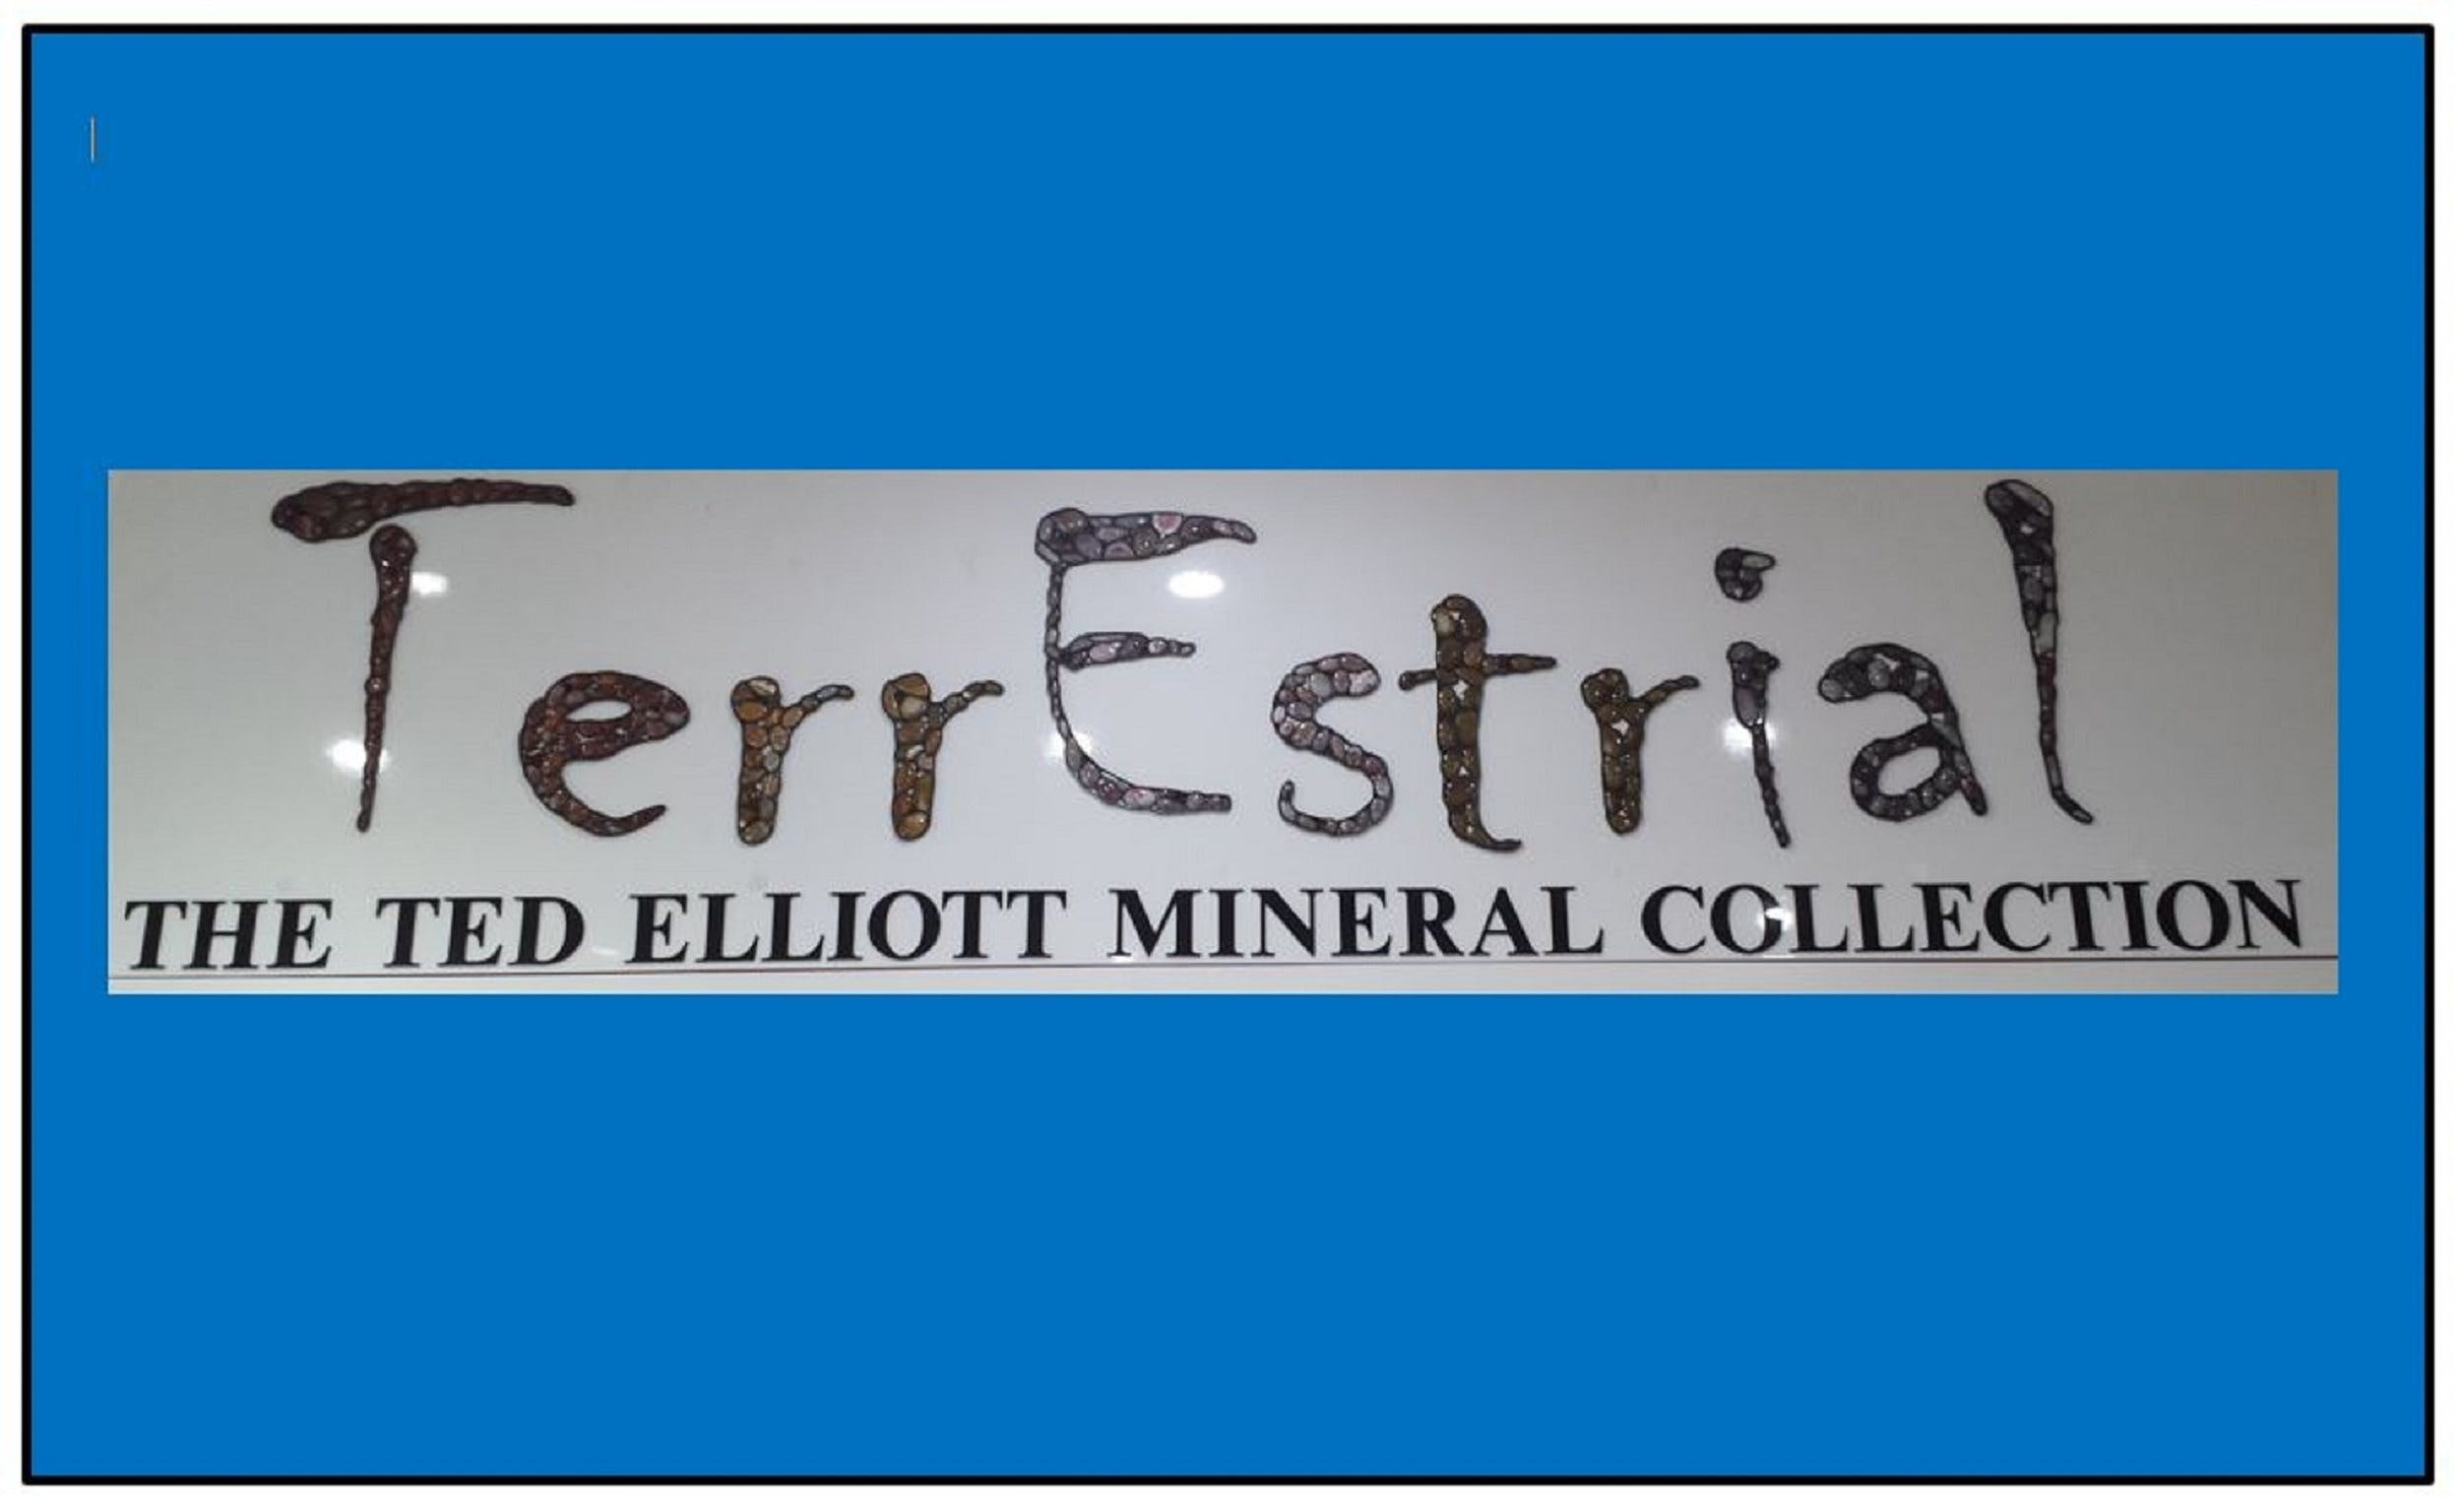 The Ted Elliott Mineral Collection - Accommodation Tasmania